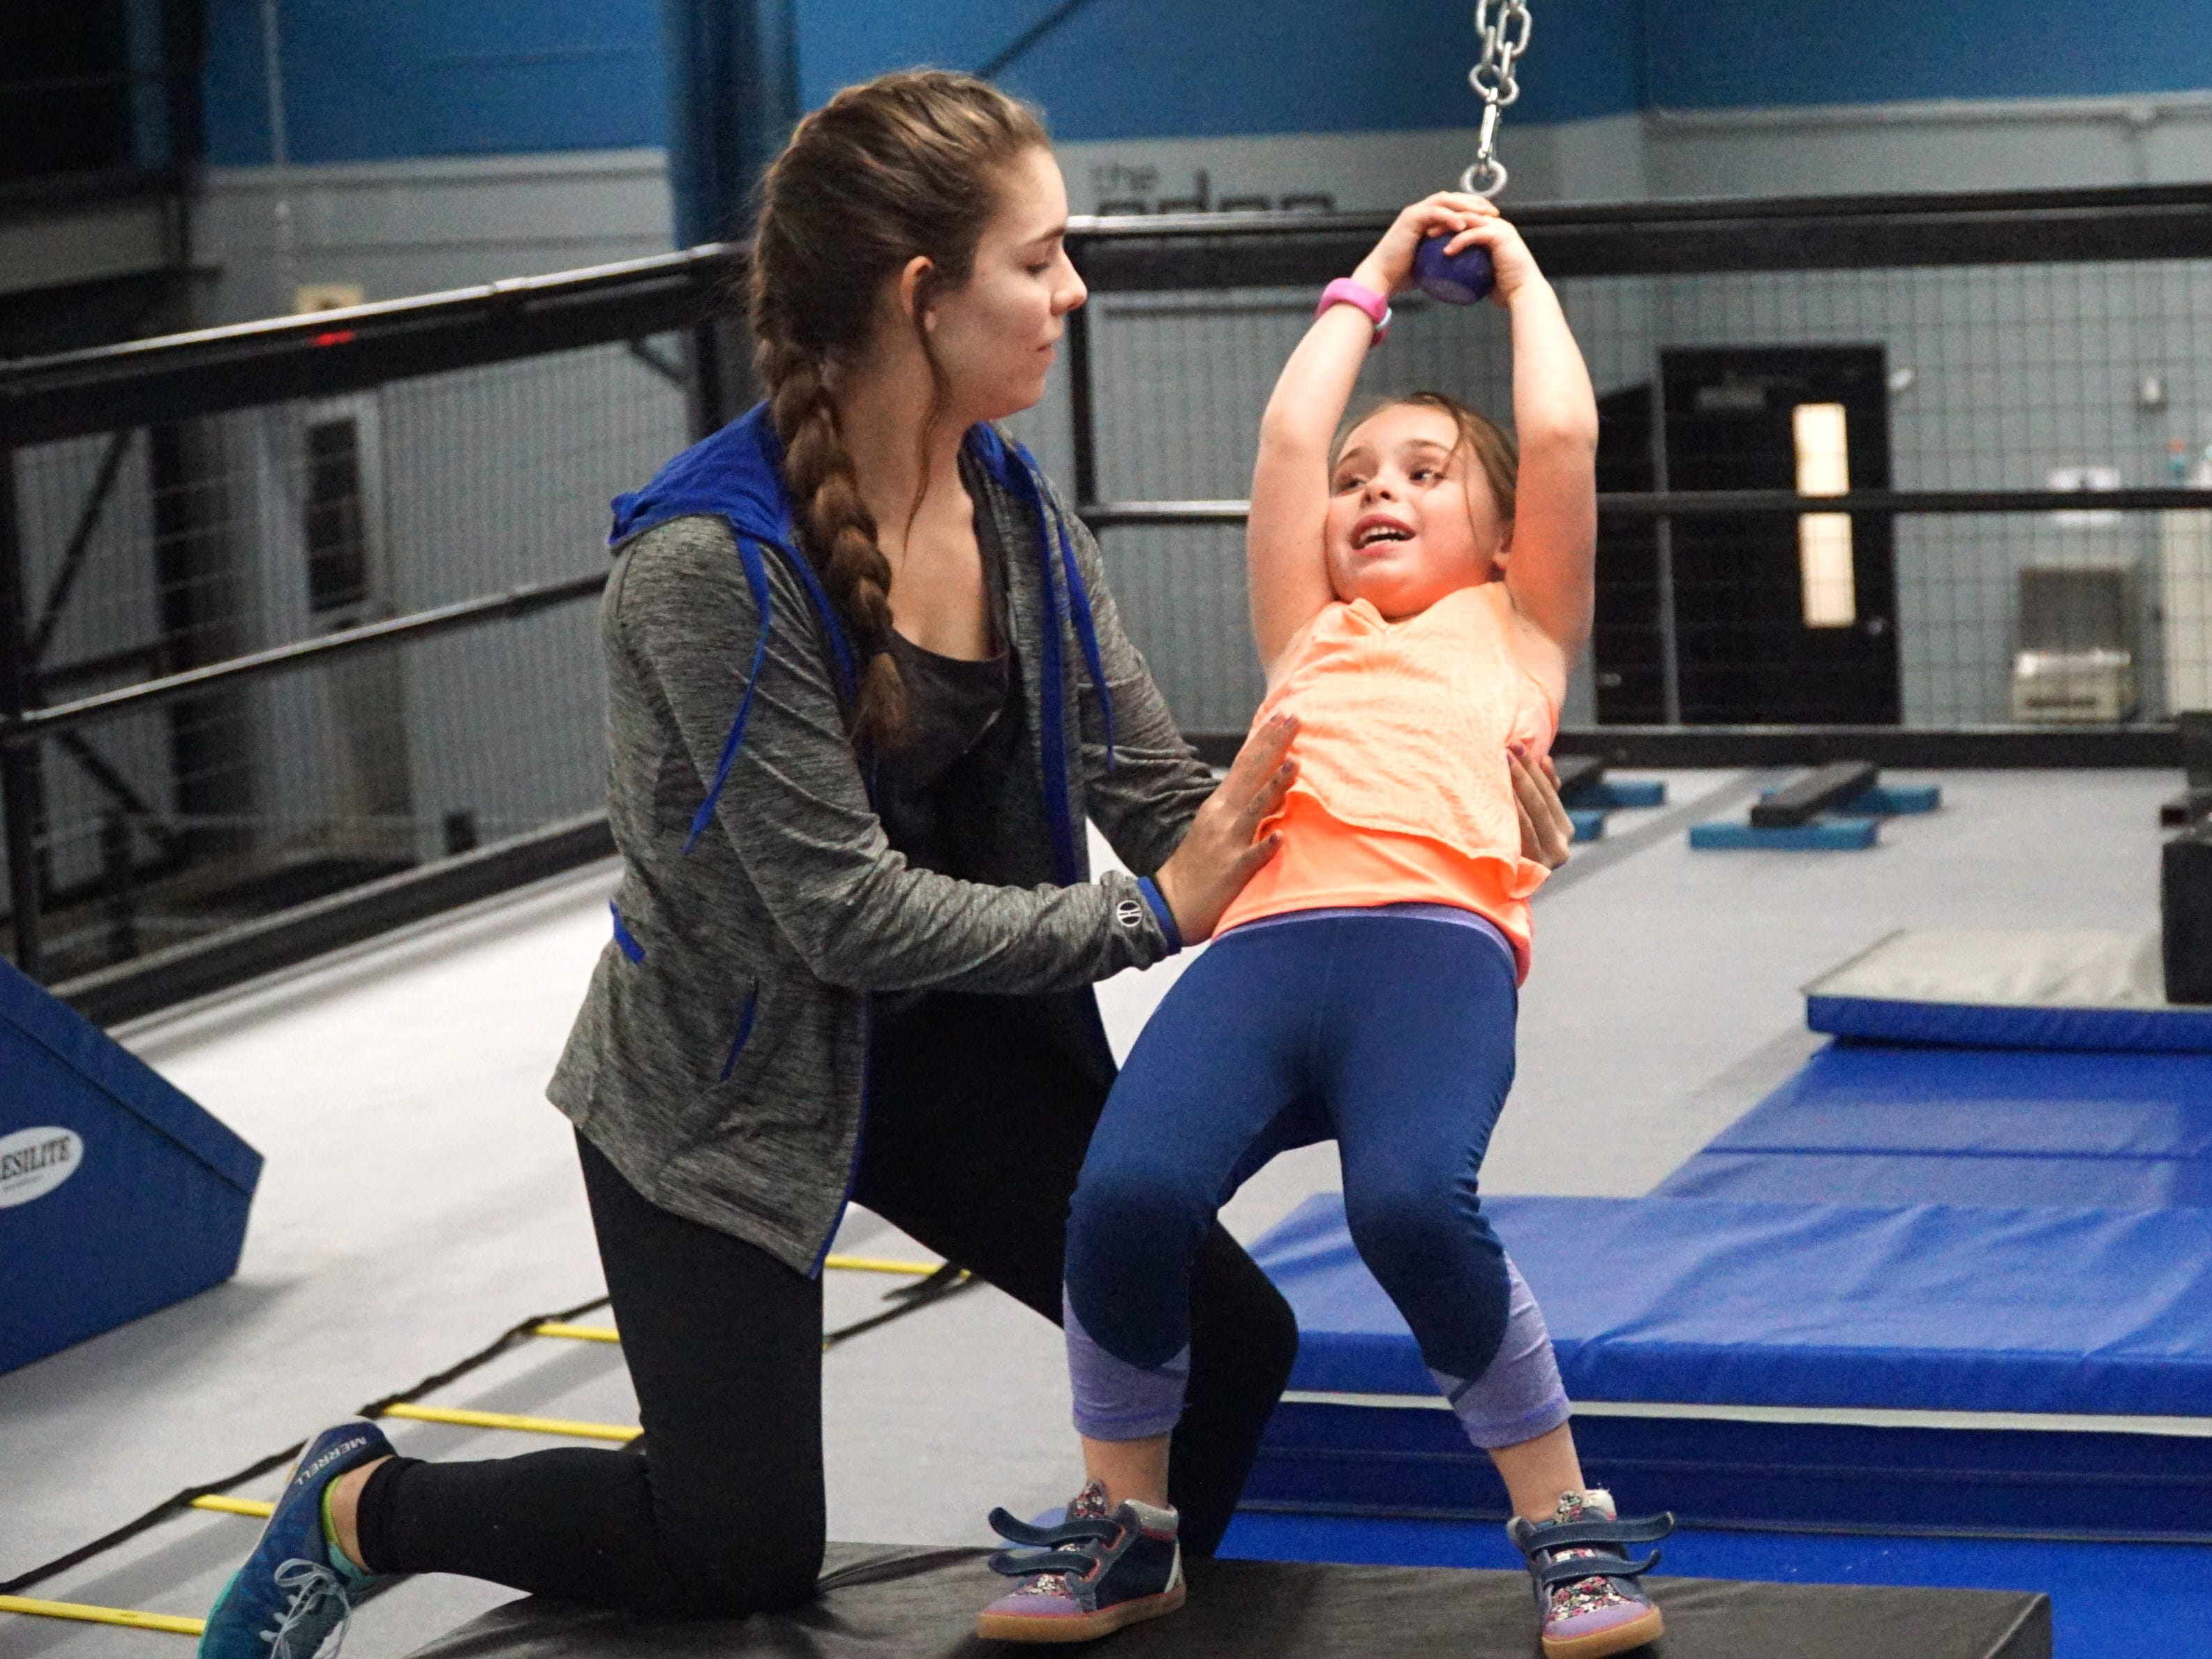 Maggie Lambert, left, assists Morgan Hudya as the youngster swings across a small gap at the Edge Training Center's upper level course.